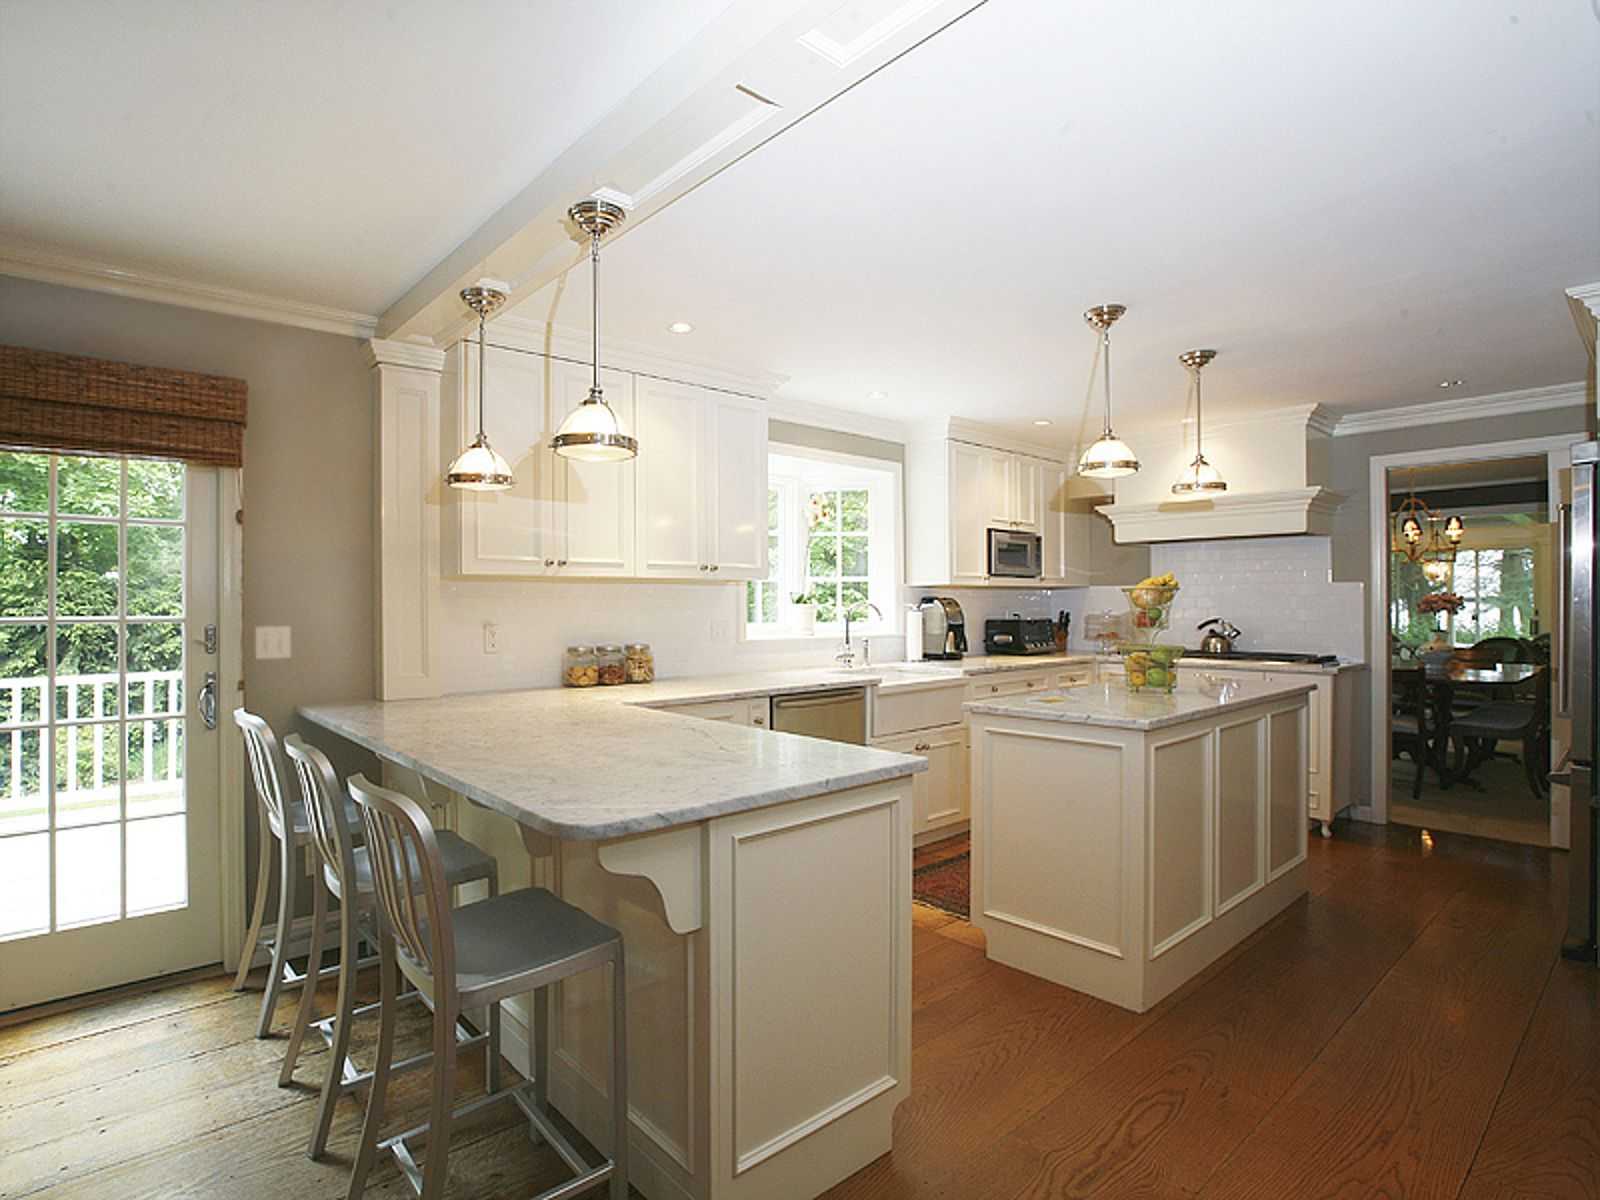 lights kitchen inspiration design u shaped kitchen island kitchen with island interior on u kitchen with island id=22109